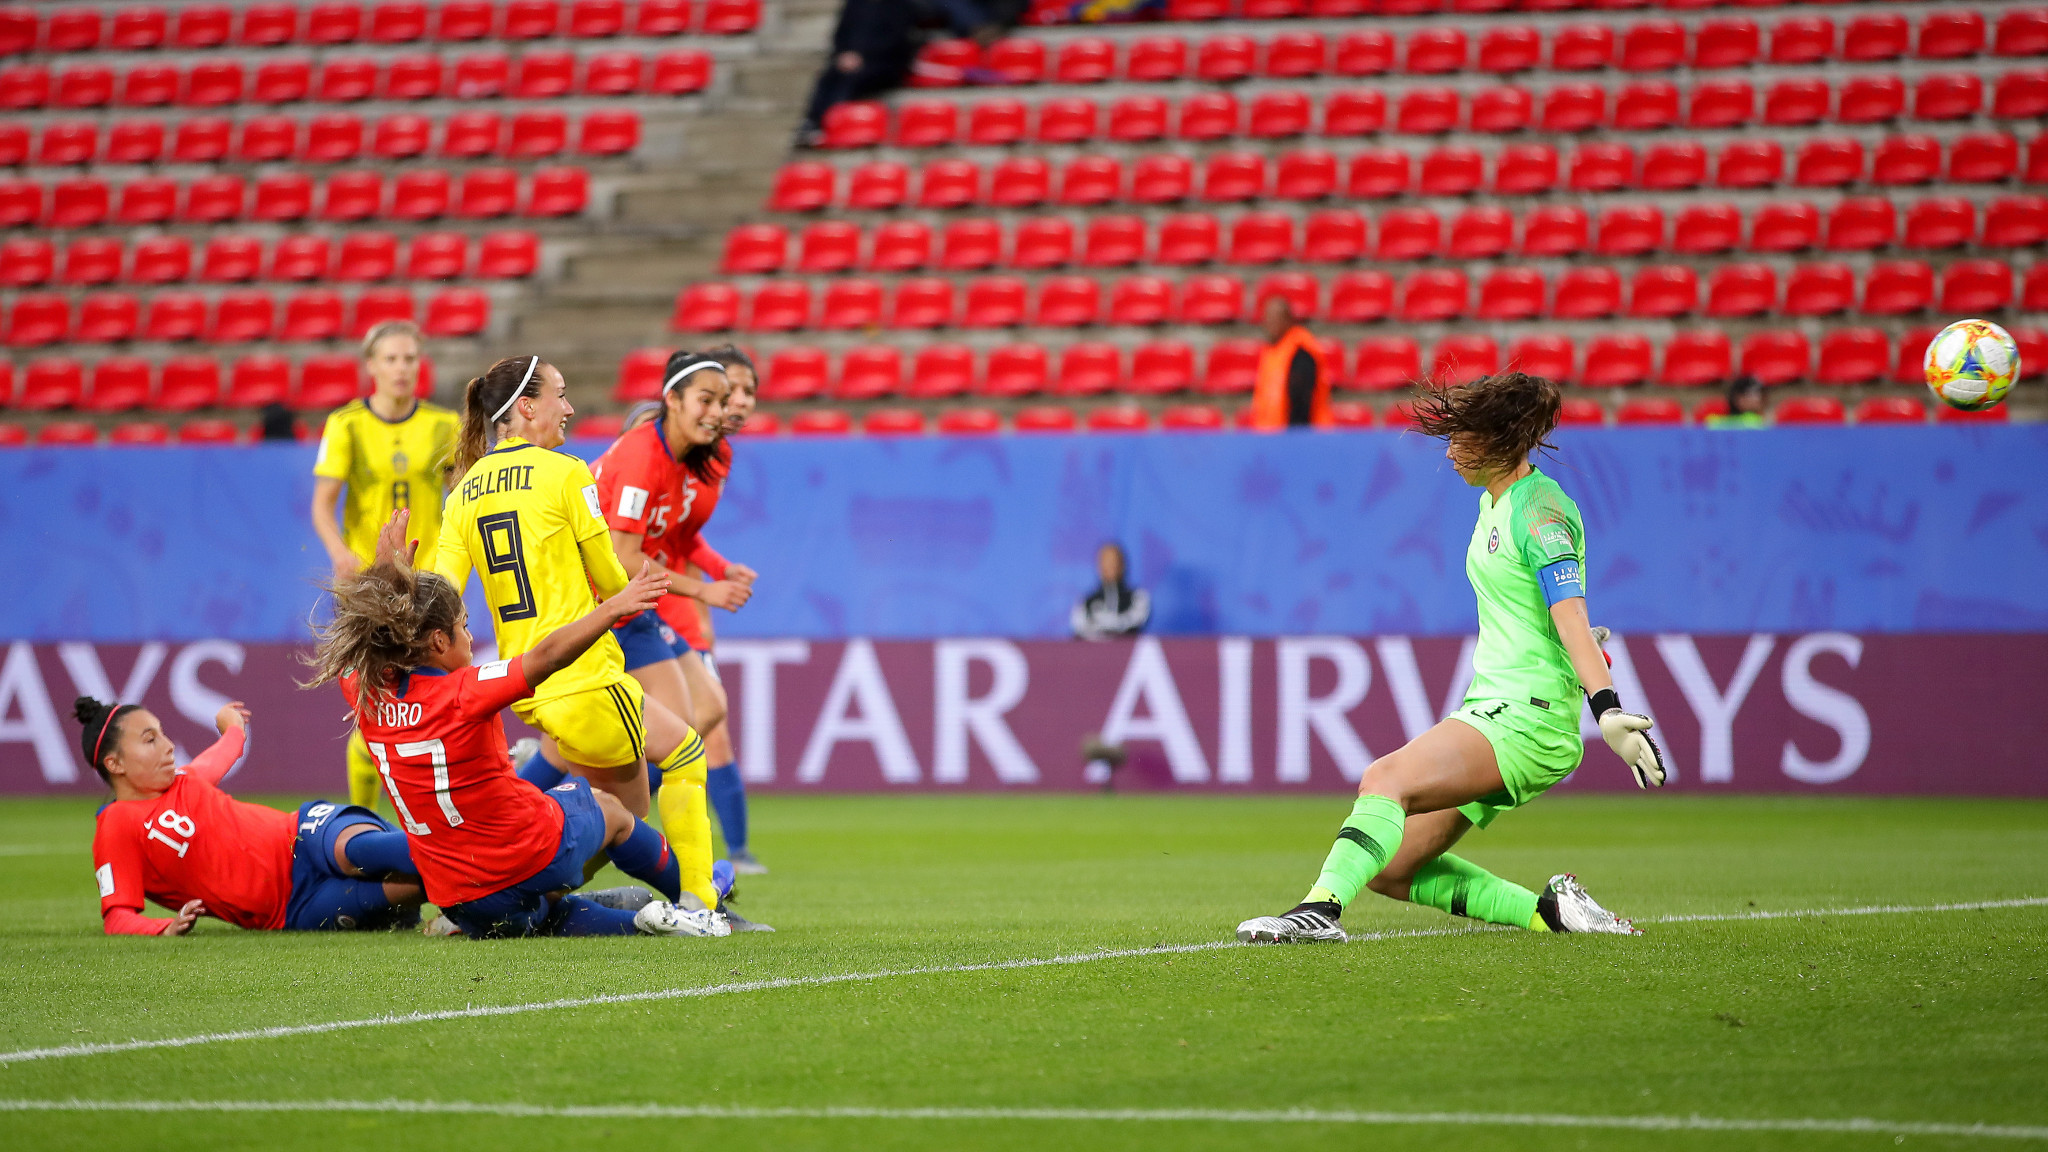 Sweden came back from the 40 minute break the stronger team, with Kosovare Asllani putting them 1-0 up ©Getty Images